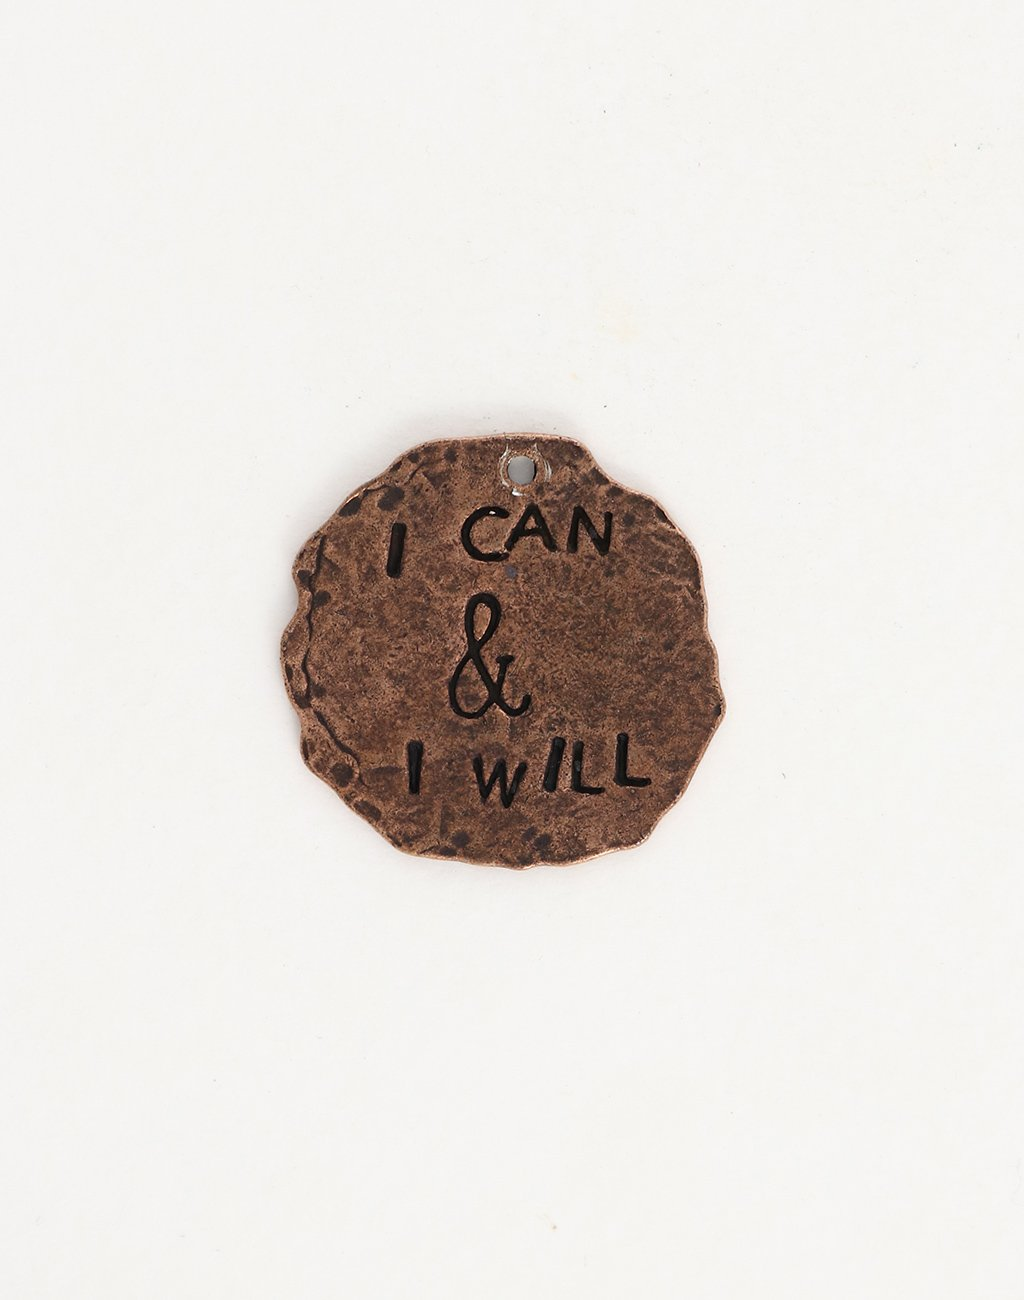 I Can & I Will, (1pc)